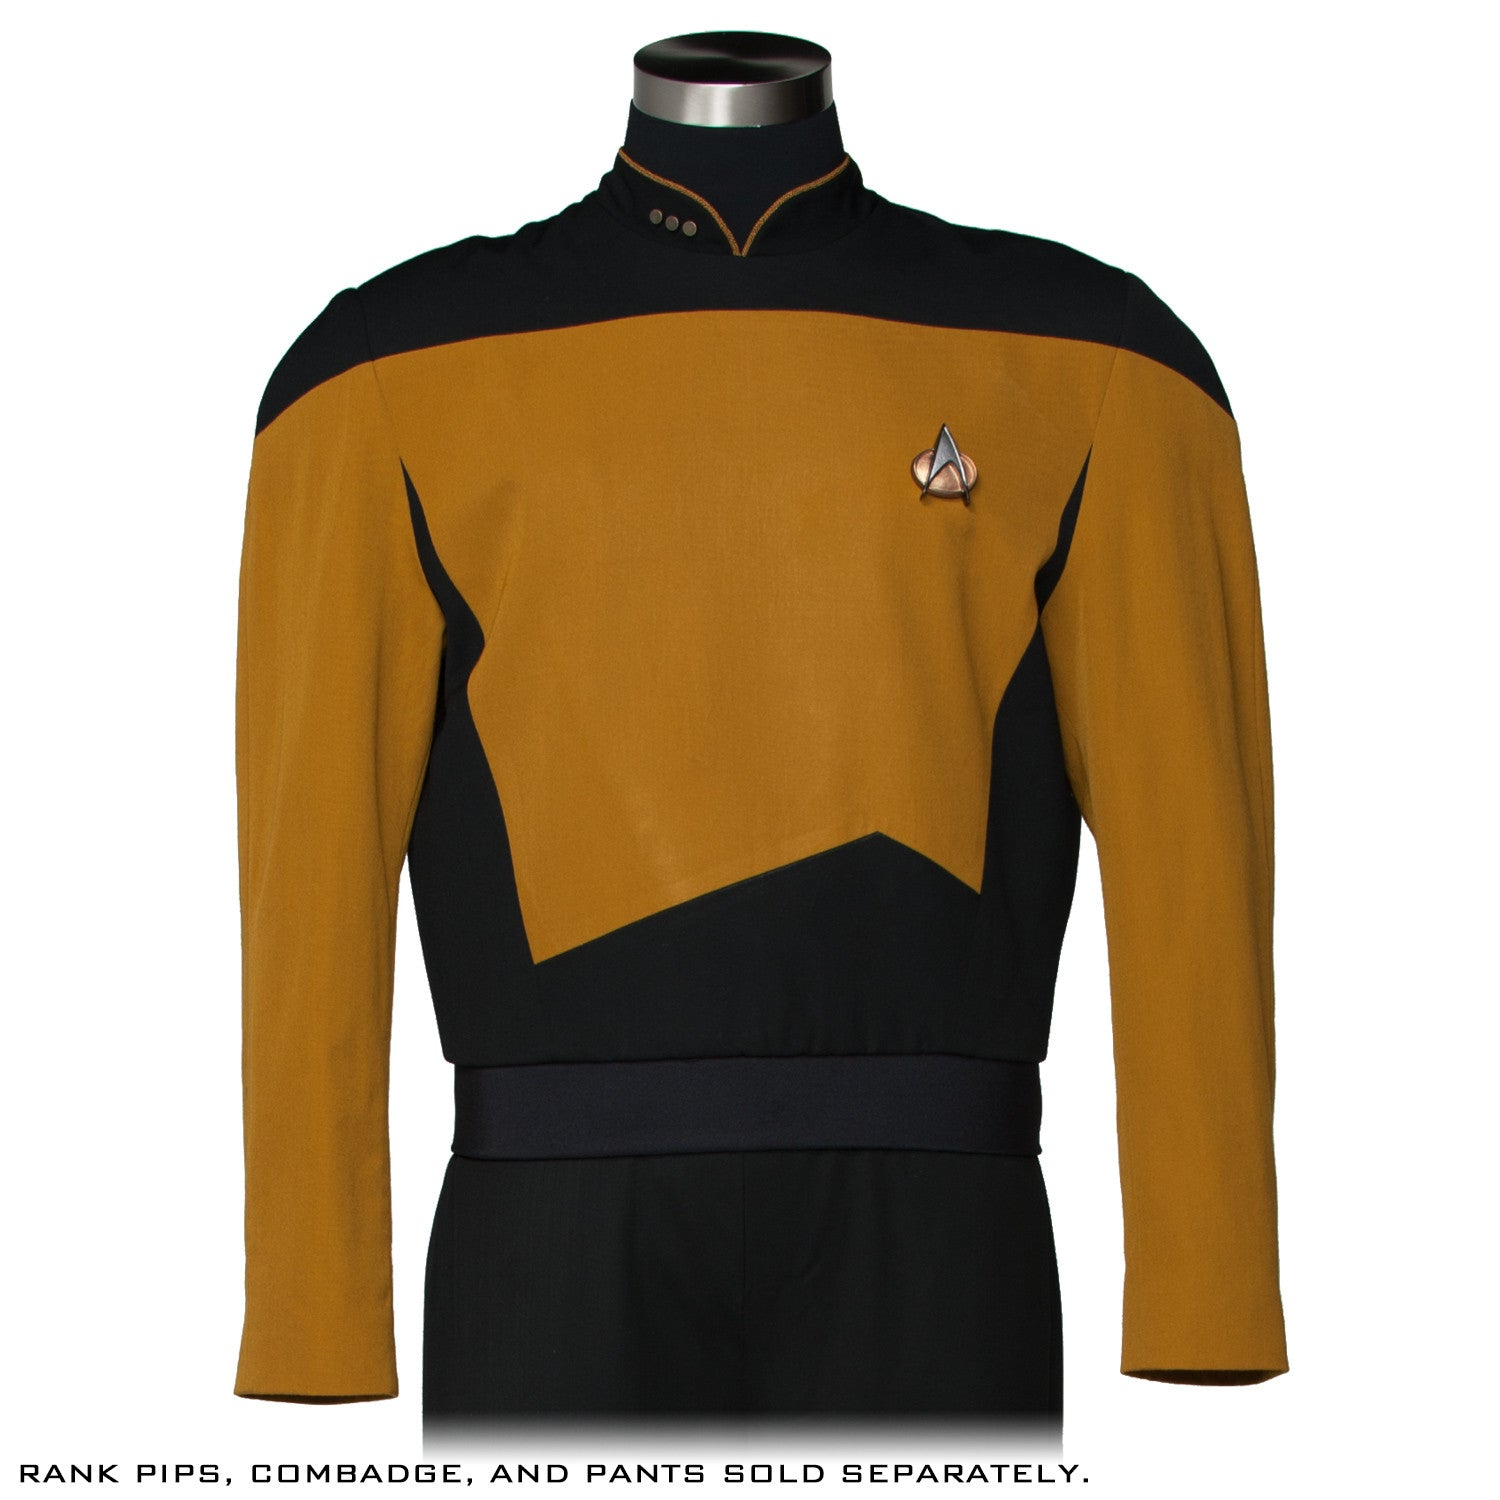 Star trek interest list anovos productions llc not available star trek the next generation premier line services mustard uniform tunic reservation buycottarizona Gallery